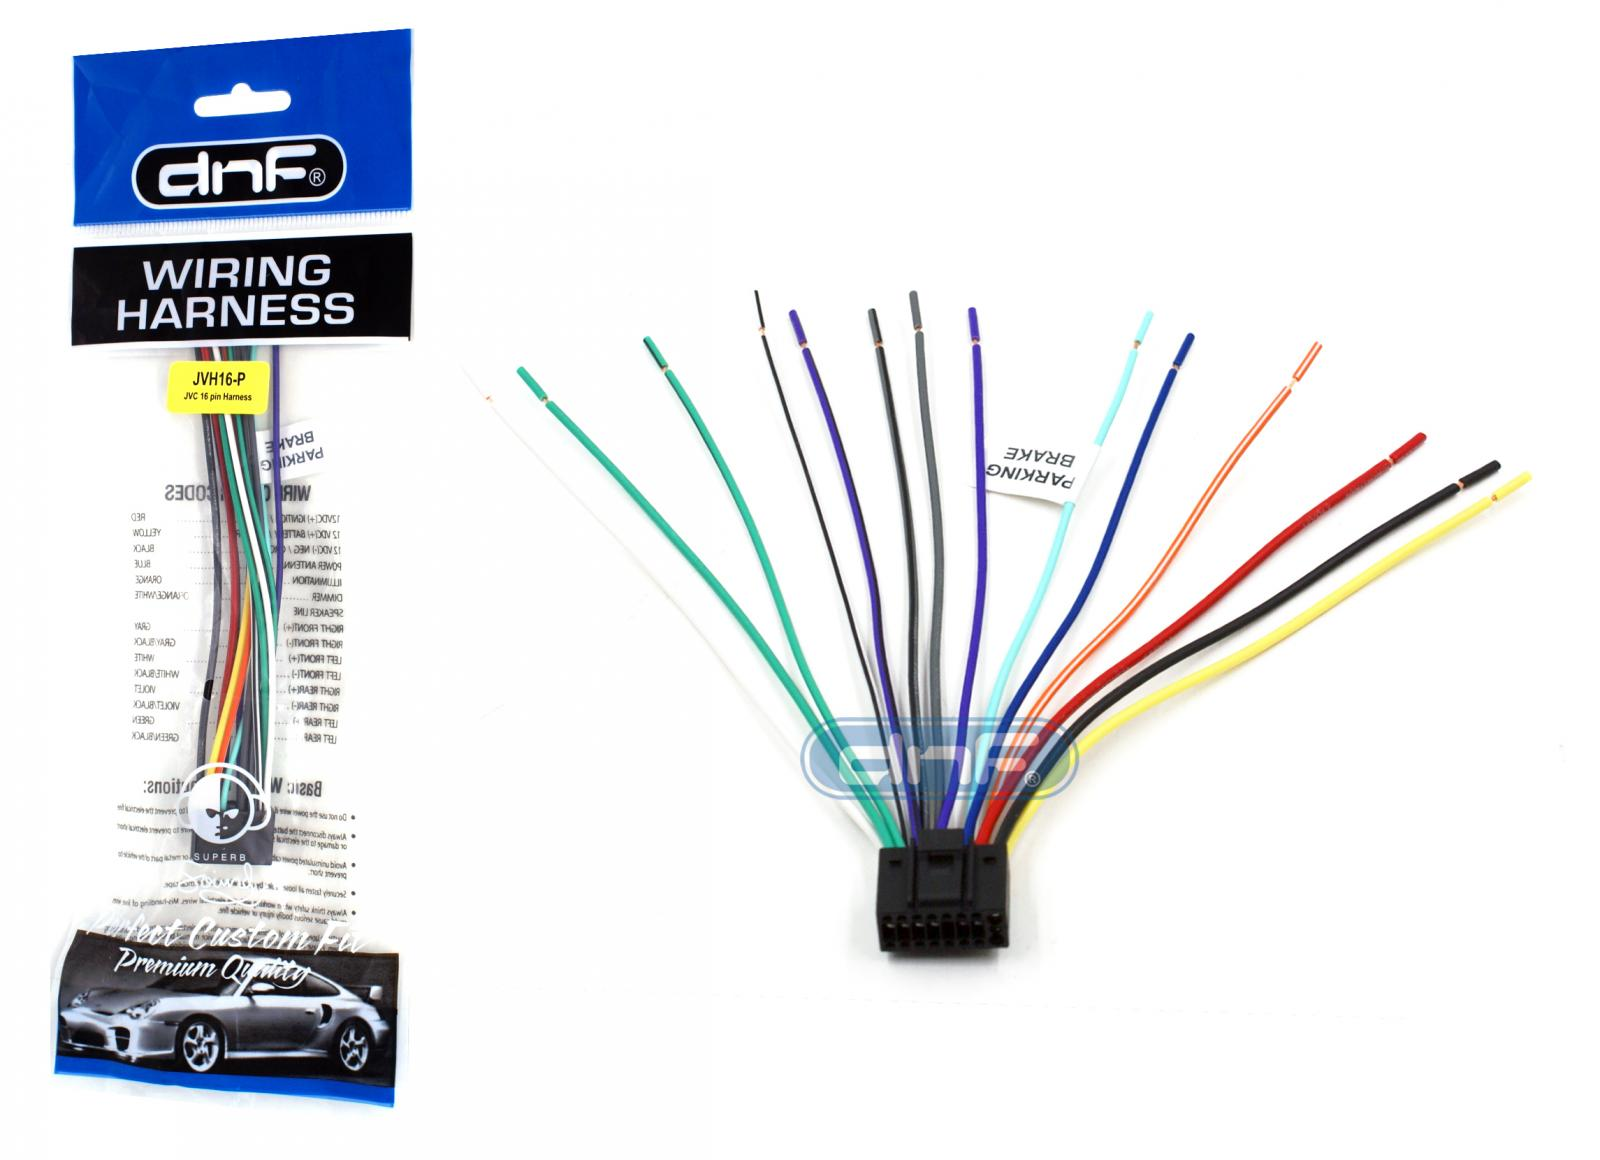 small resolution of jvc kw nx7000 kwnx7000 kw avx710 kwavx710 copper wiring harness wire jvc kd r330 wiring harness diagram jvc kd wiring harness